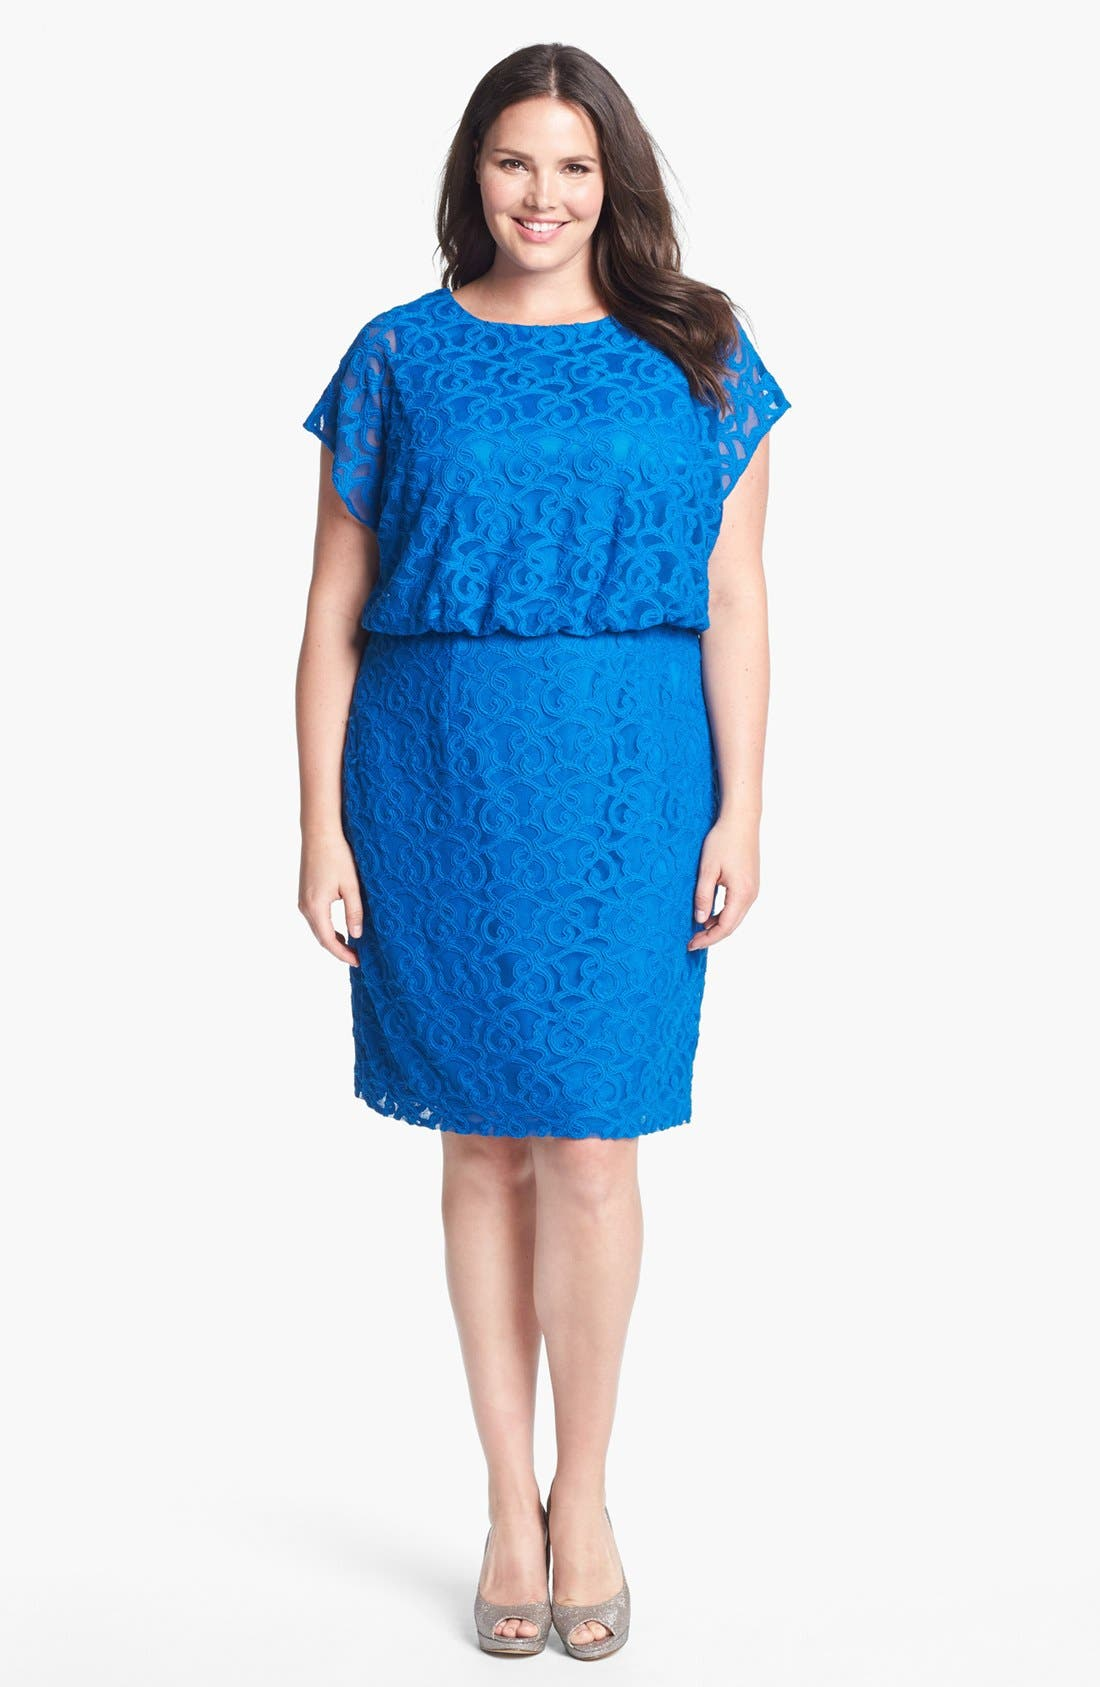 Alternate Image 1 Selected - Adrianna Papell Lace Blouson Dress (Plus Size)